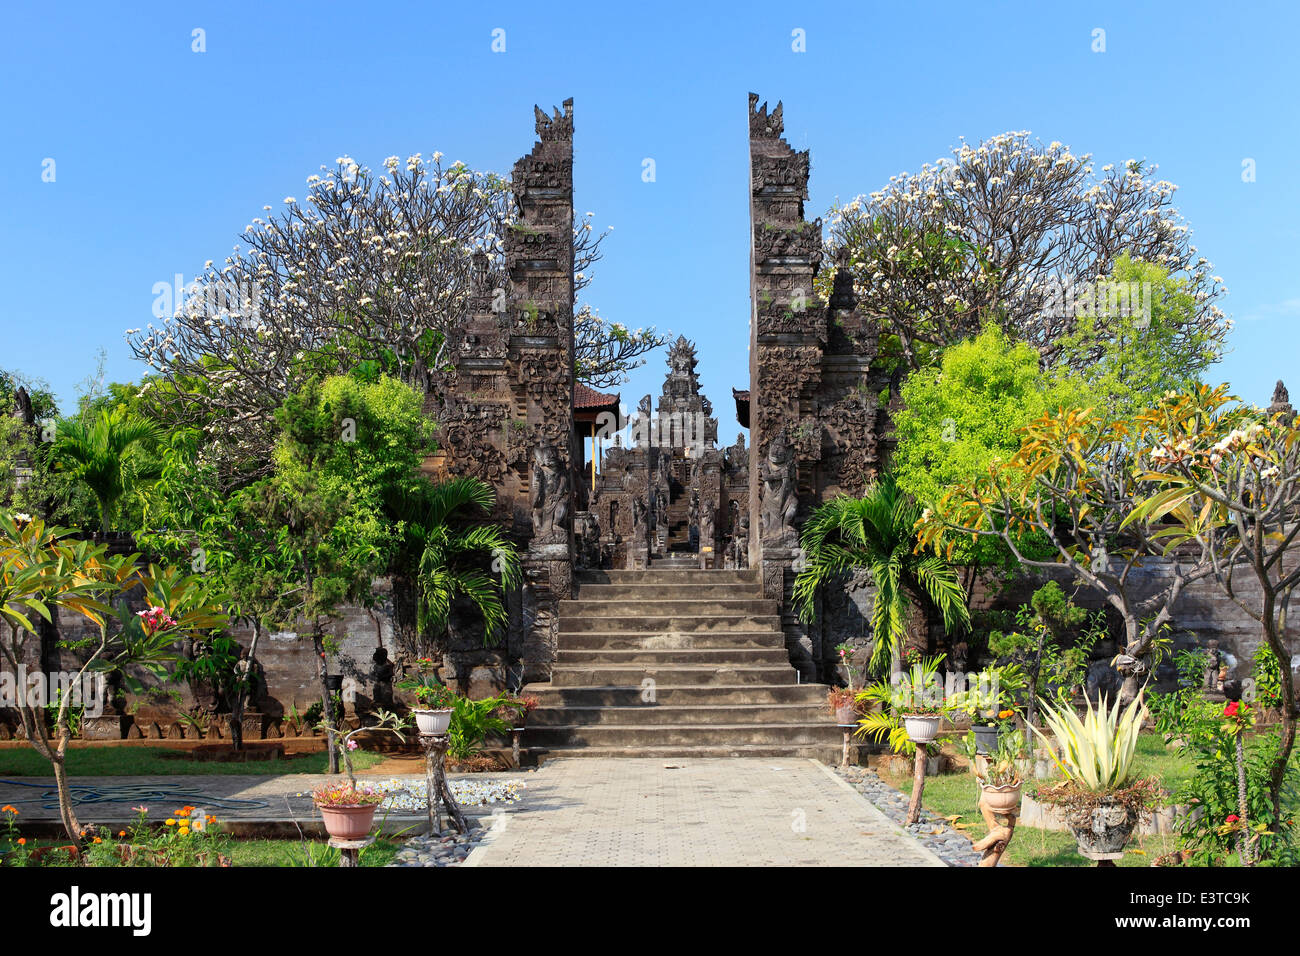 Pura Maduwe Karang, a temple in north east Bali at Kubutambahan, is dedicated to the gods of the earth and crops. - Stock Image